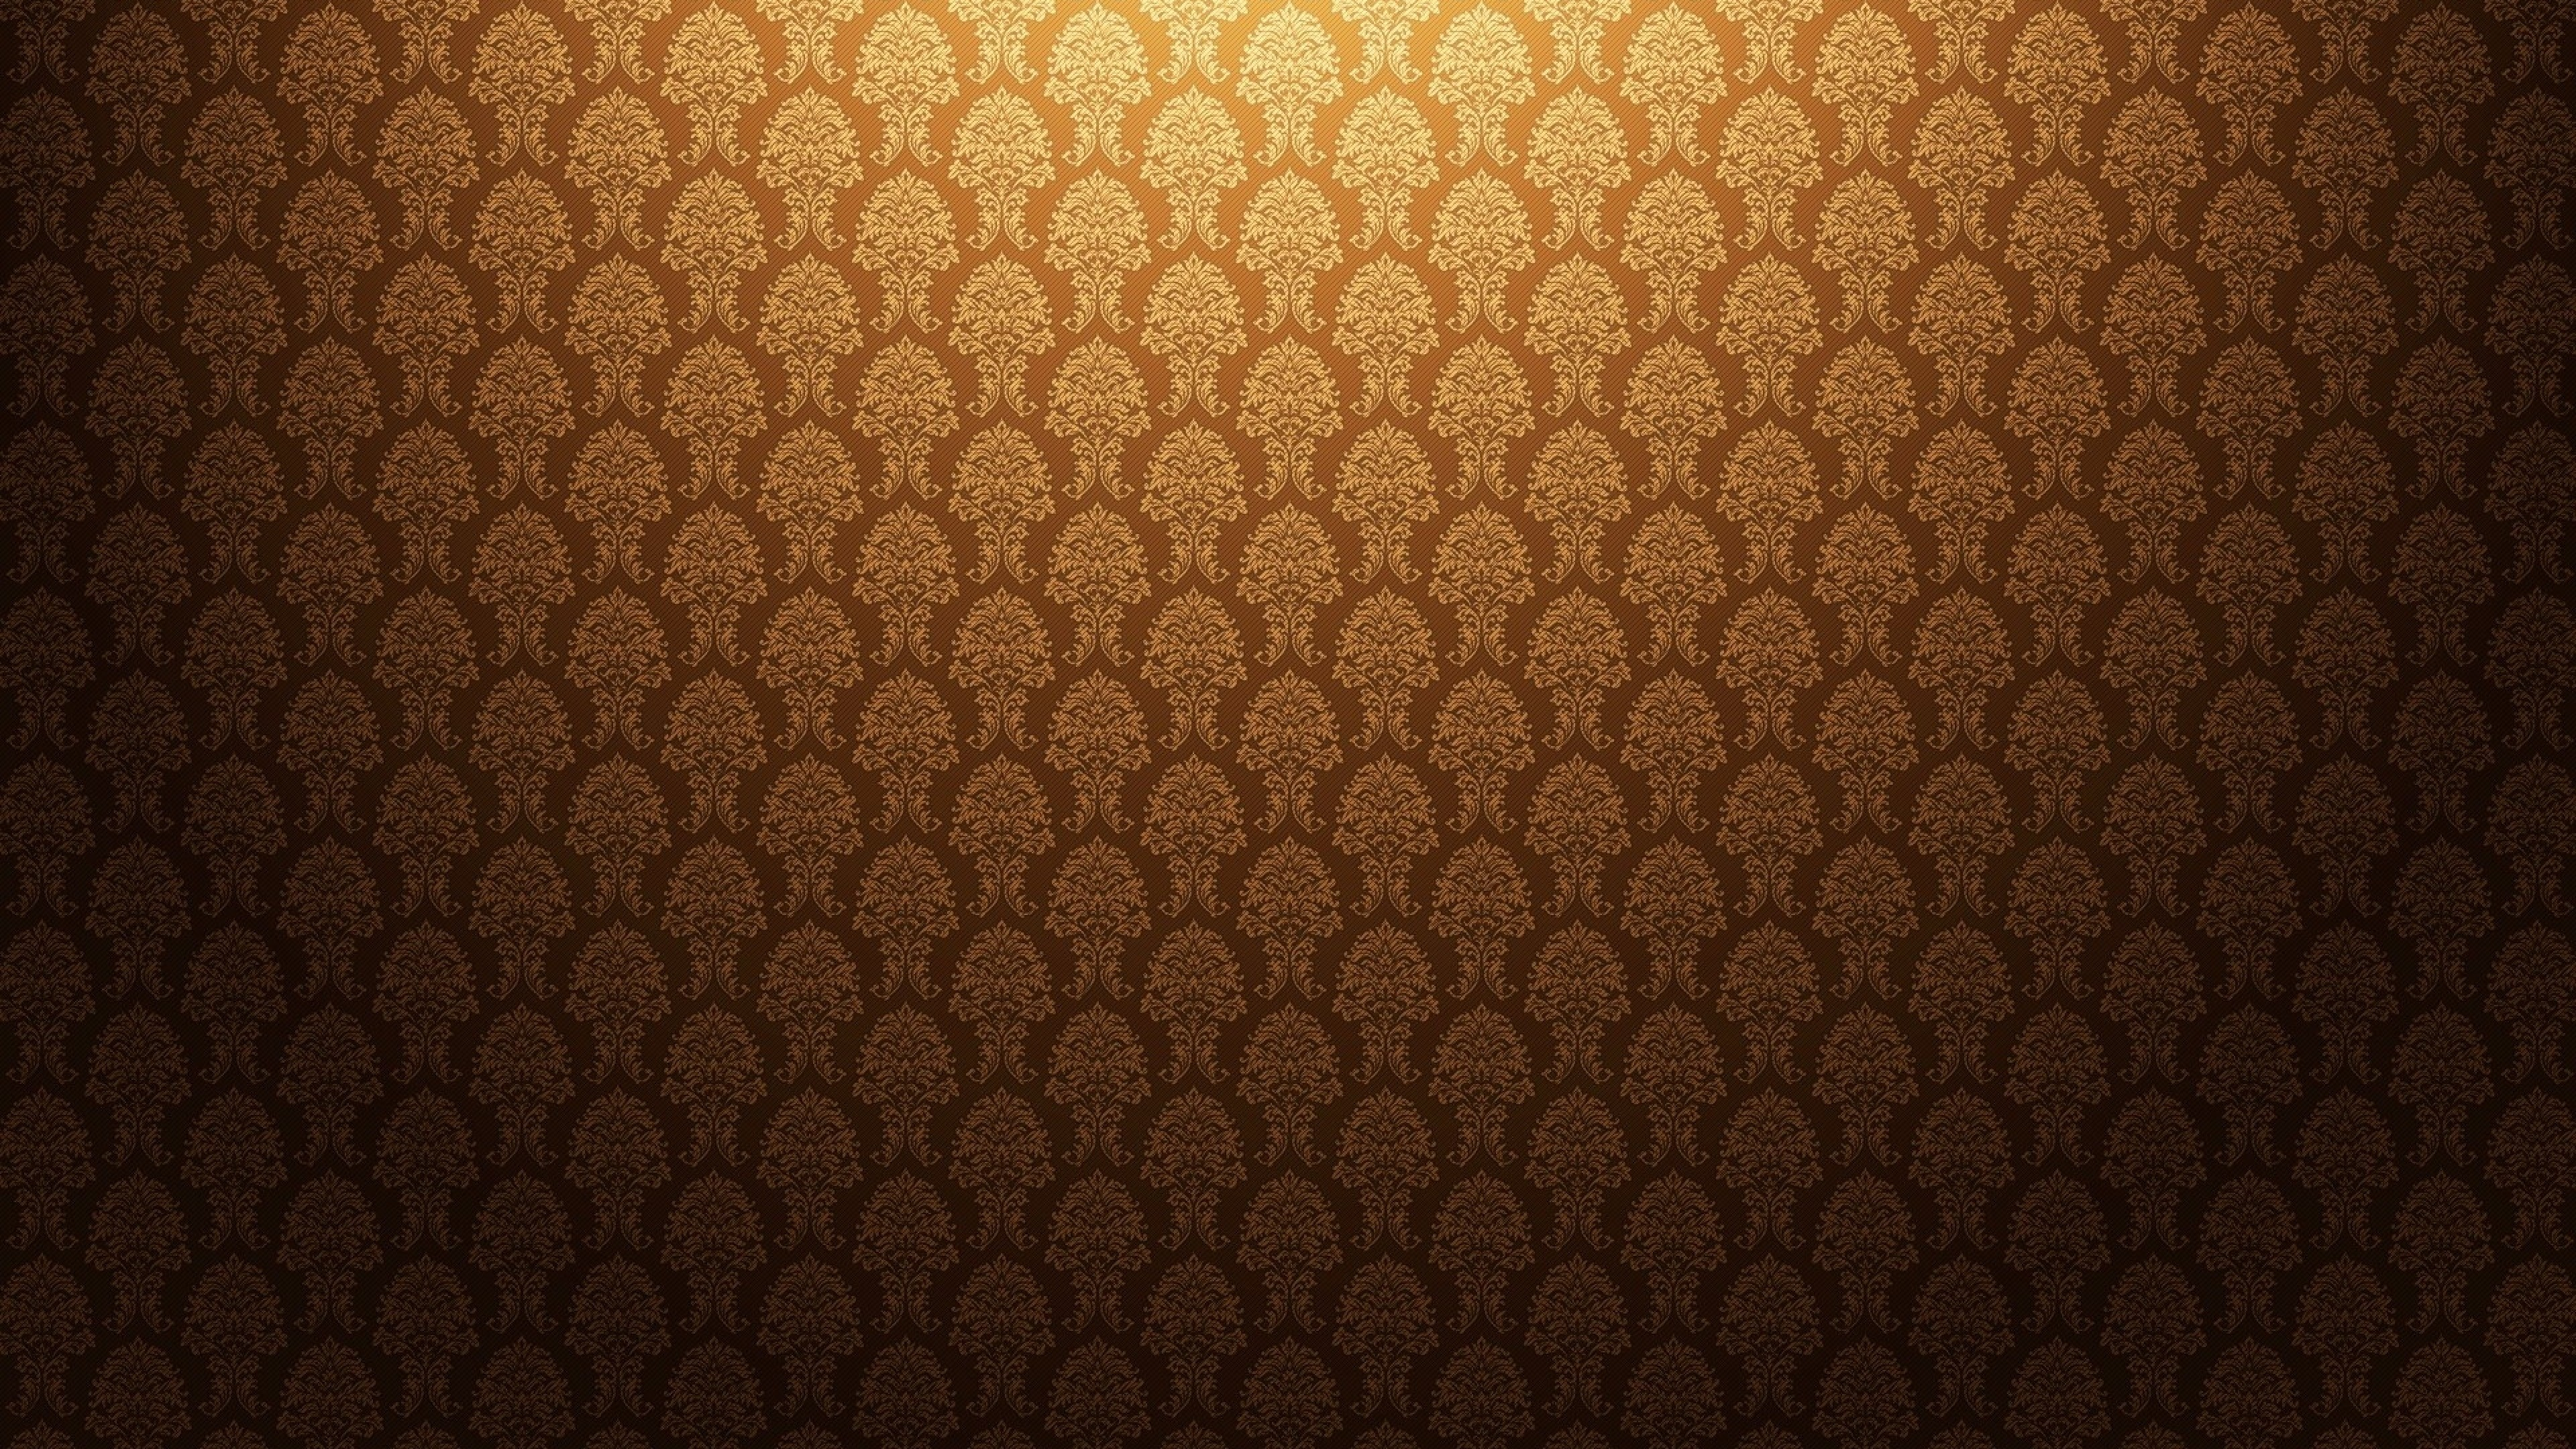 Antique Background 183 ① Download Free Stunning Full Hd